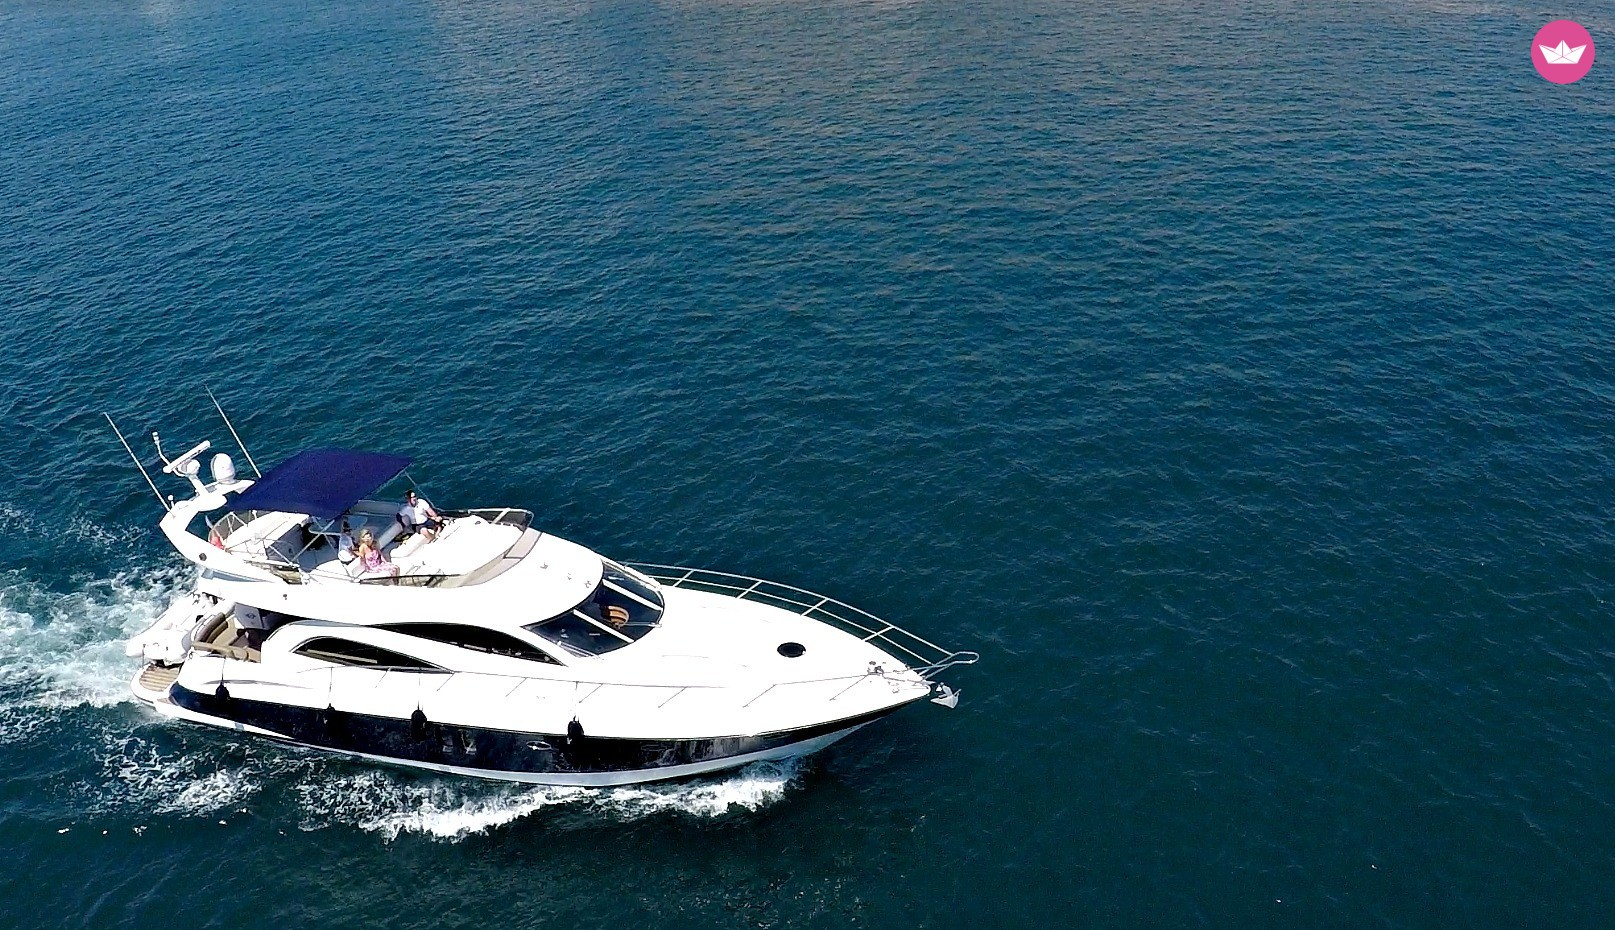 Rent / charter Luxury Yacht & Motor Boat for Conference & Incentive / Meetings / Corporate, Full Day Tour, Private Charter & Team Building Activities in Malta & Gozo - Sunseeker Manhattan 56